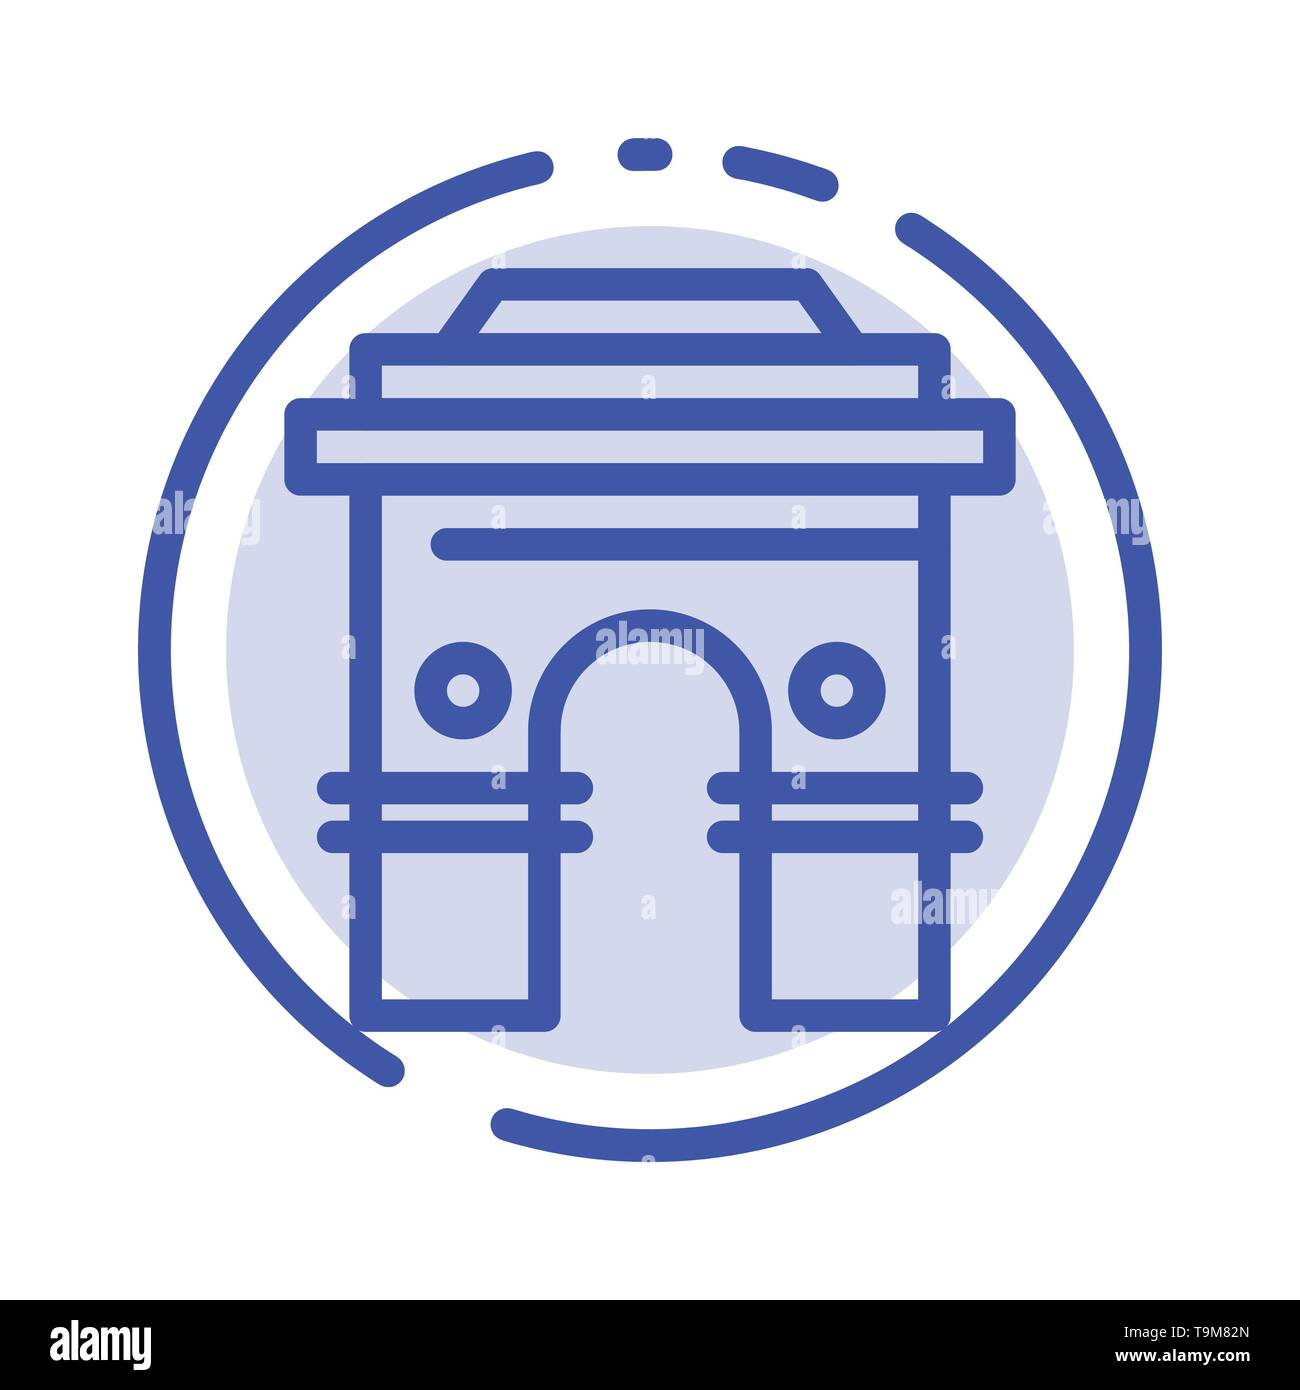 Culture, Global, Hinduism, India, Indian, Srilanka, Temple Blue Dotted Line Line Icon - Stock Image